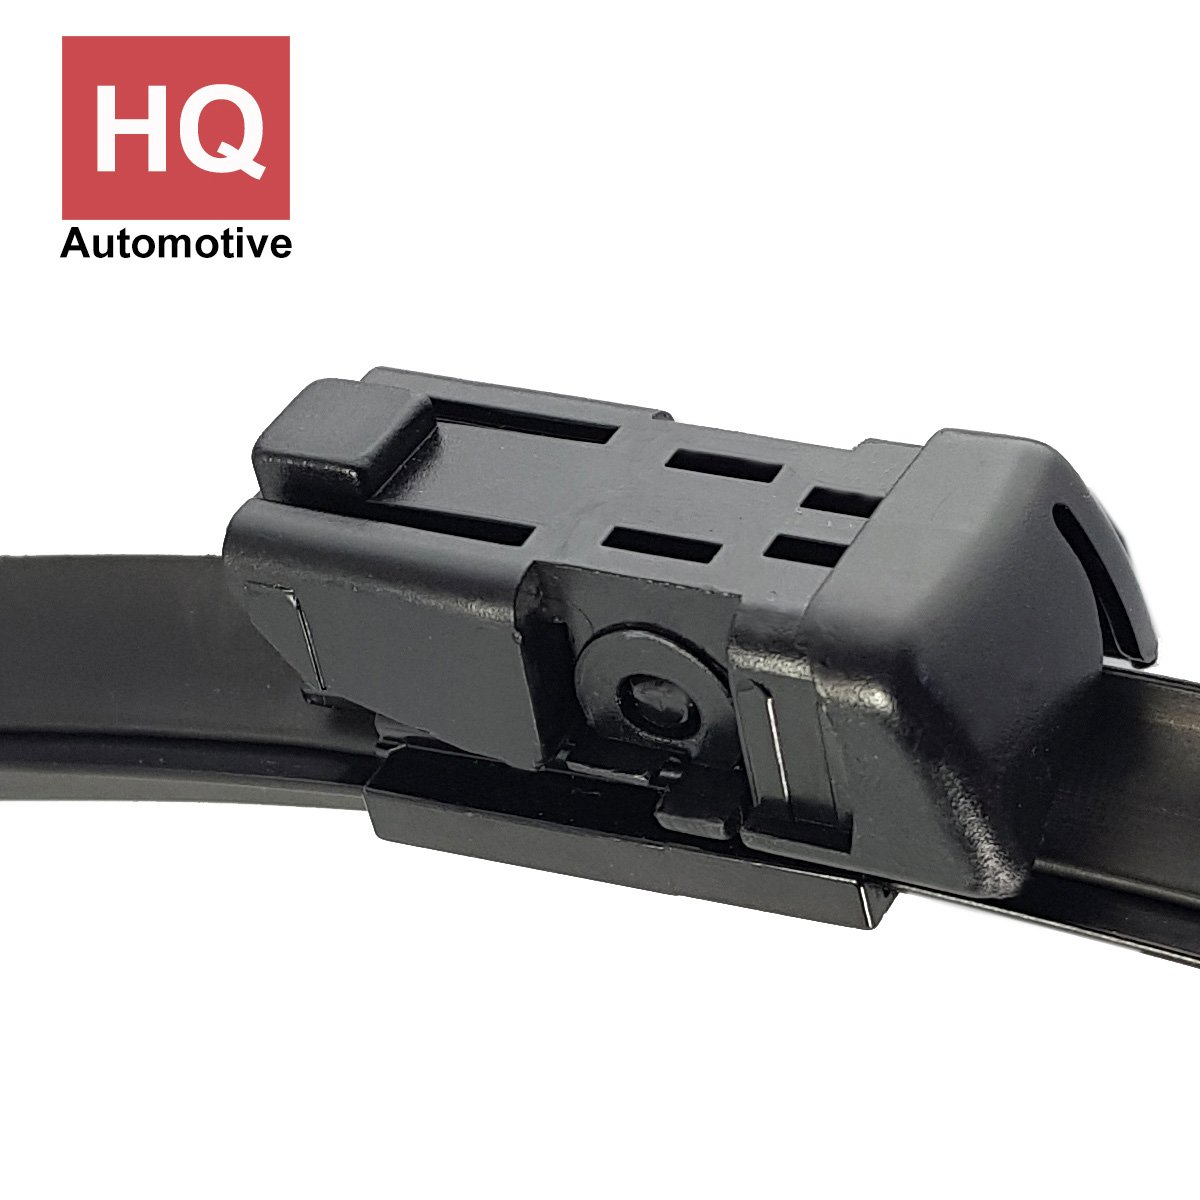 HQ Automotive ADR03-234|HQ14B Wiper Blades